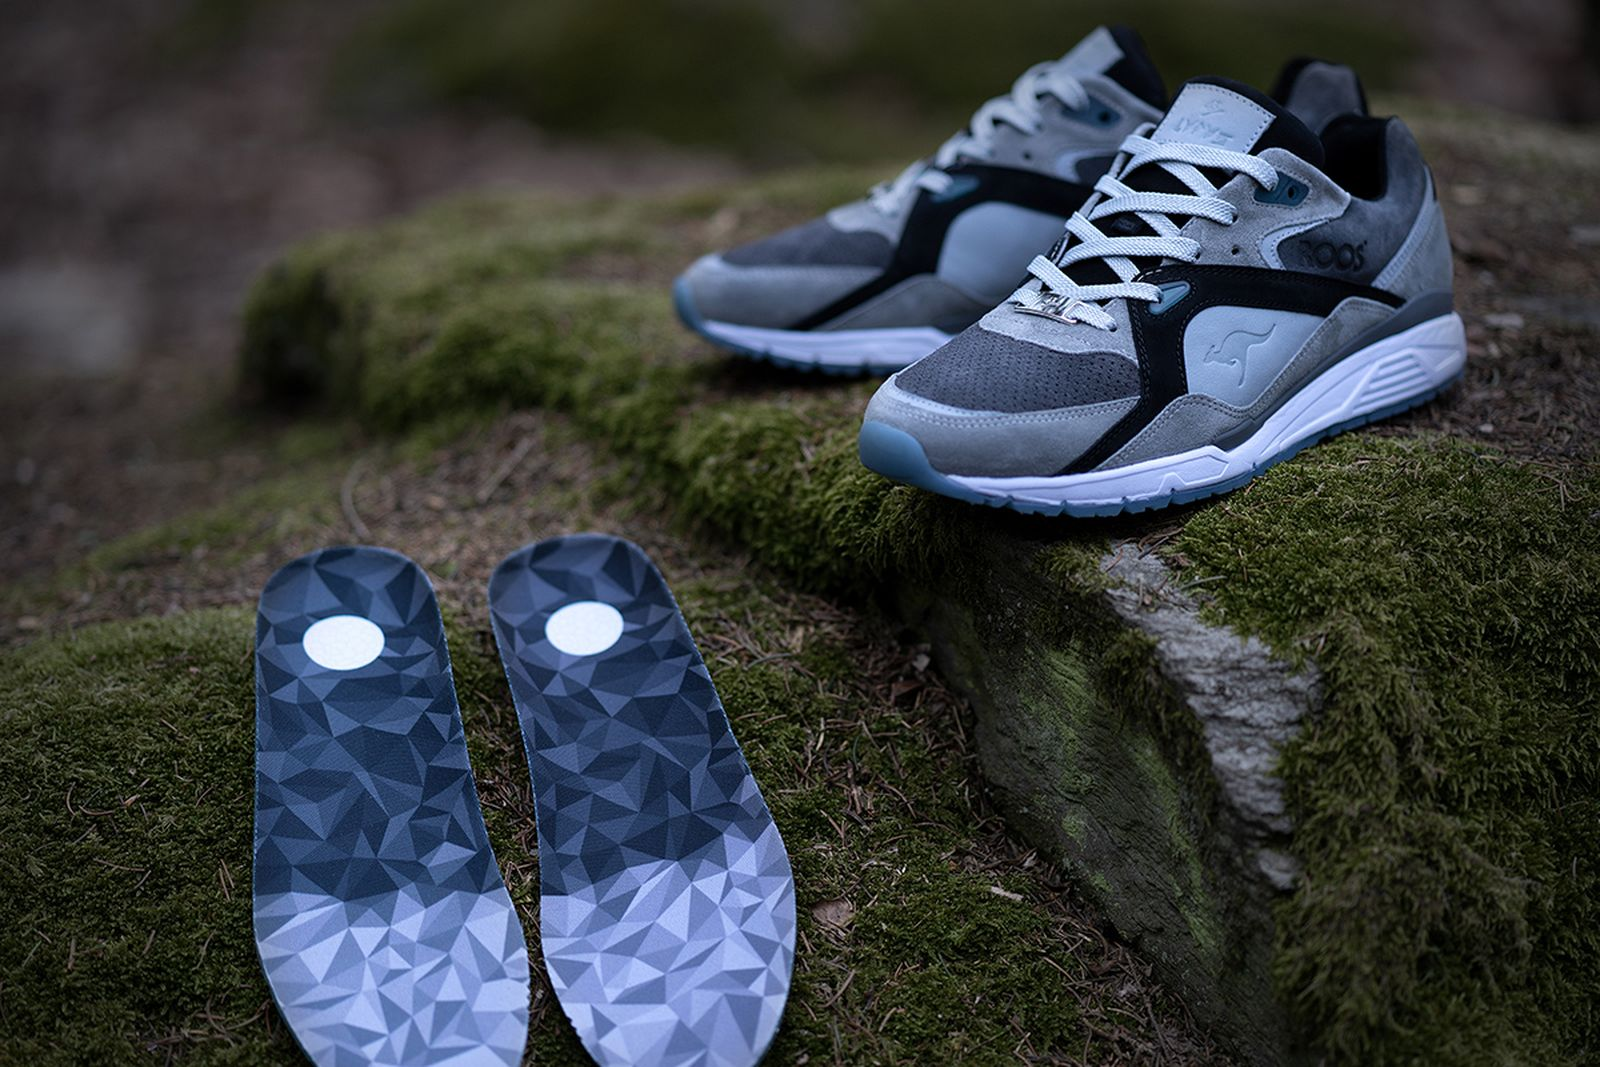 daily-sneaker-roundup-4-22-2021-06